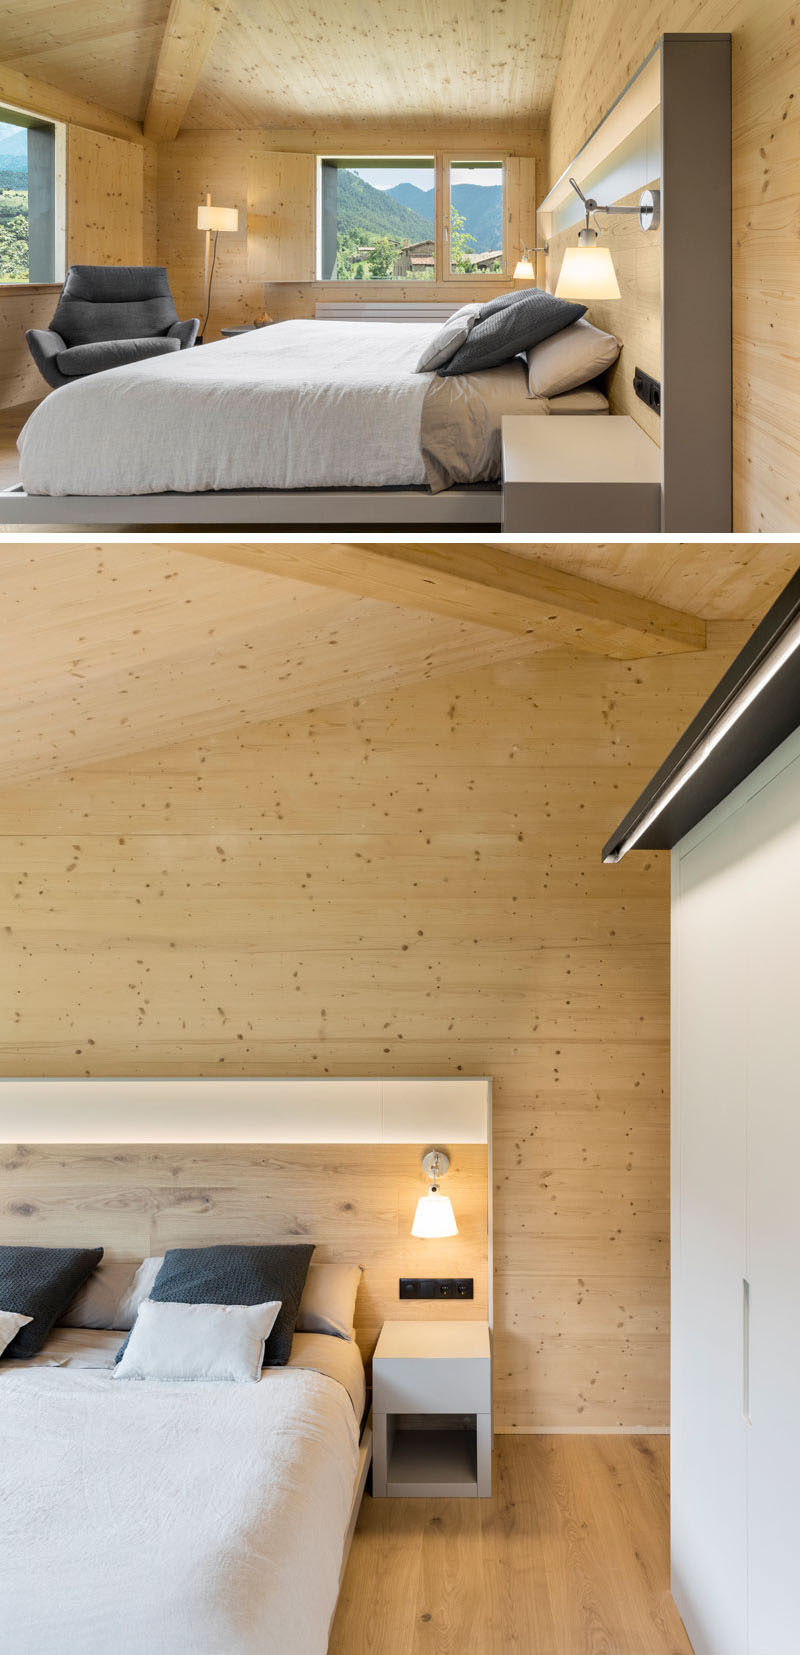 This modern master bedroom has high ceilings and is surrounded by wood floors and walls. #MasterBedroom #BedroomDesign